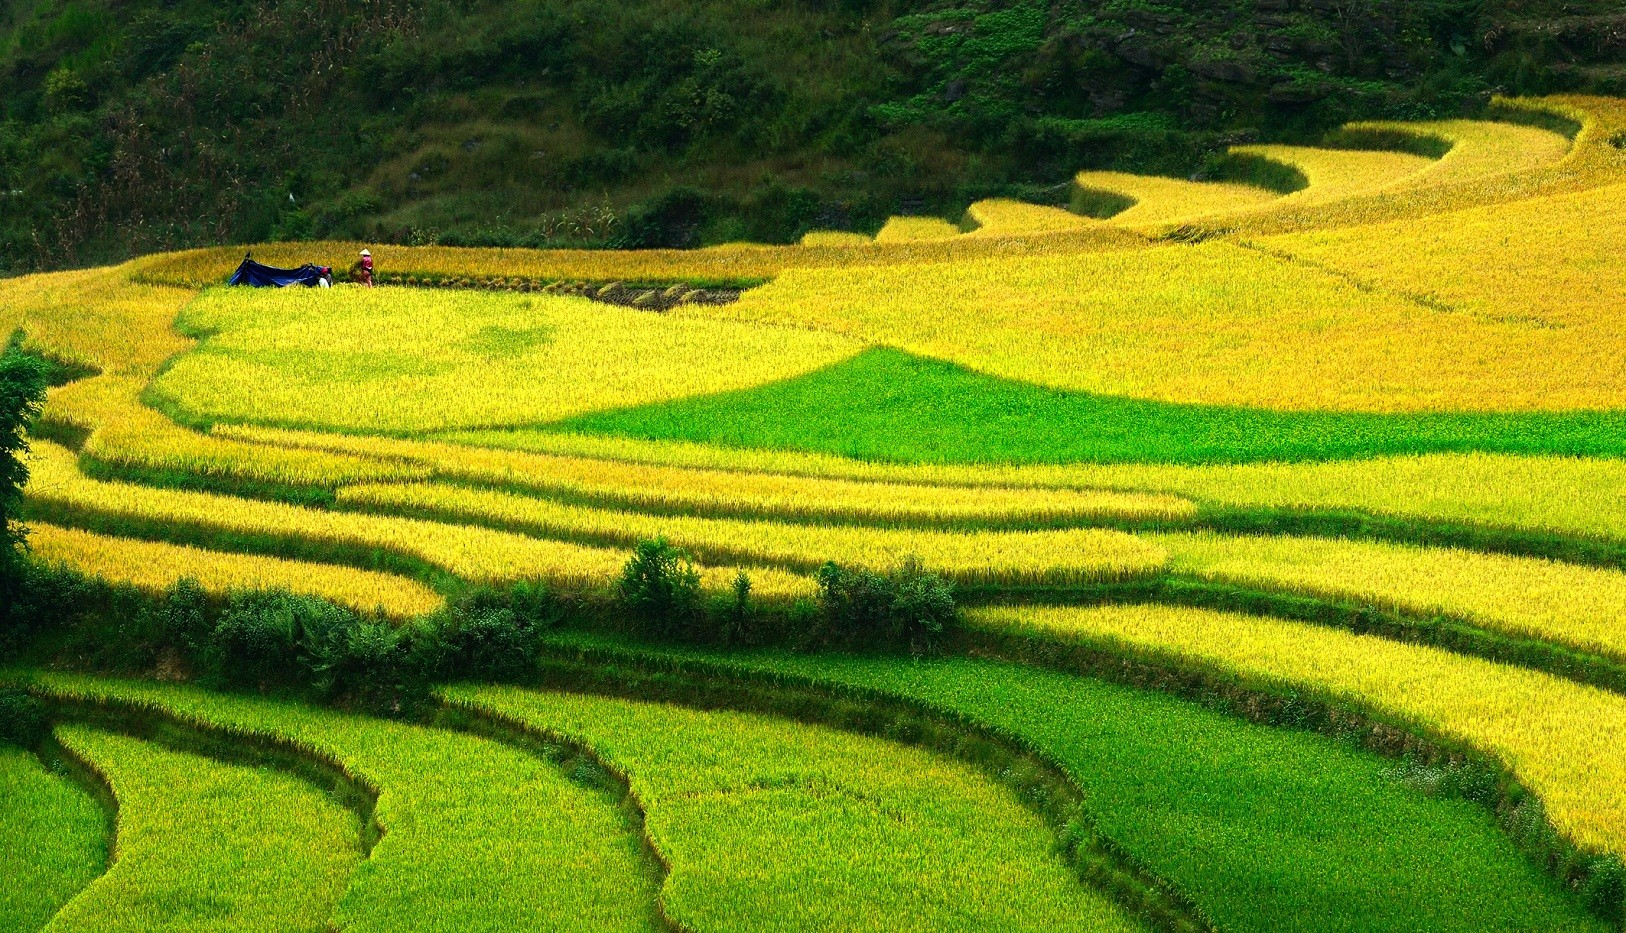 Don't leave Vietnam without visiting the rice fields and terraces